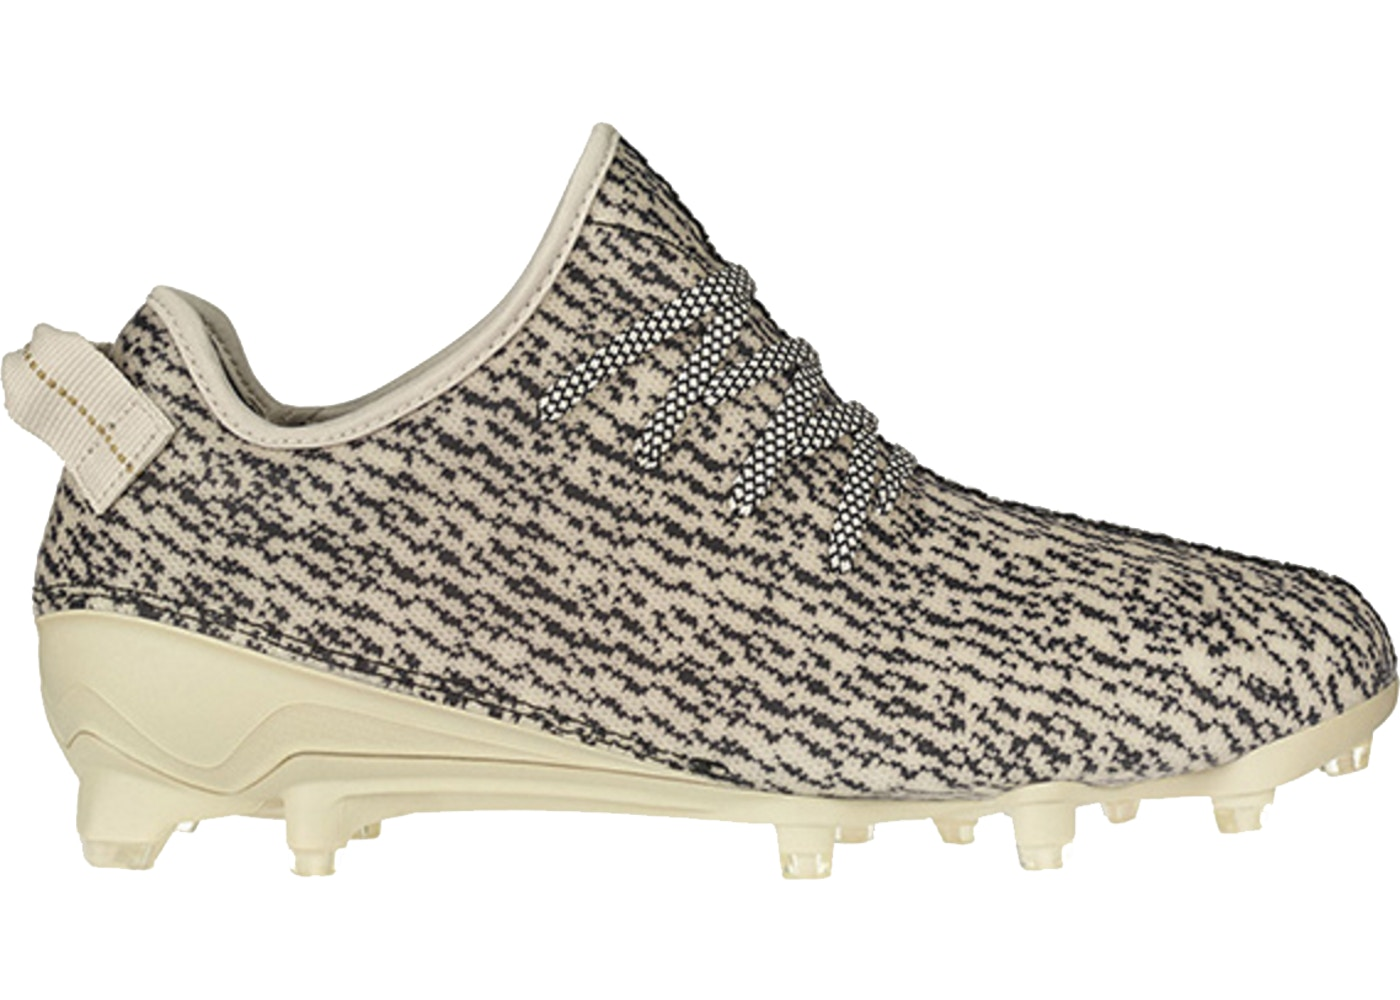 new products 866be 45b11 adidas Yeezy 350 Cleat Turtledove - B42410